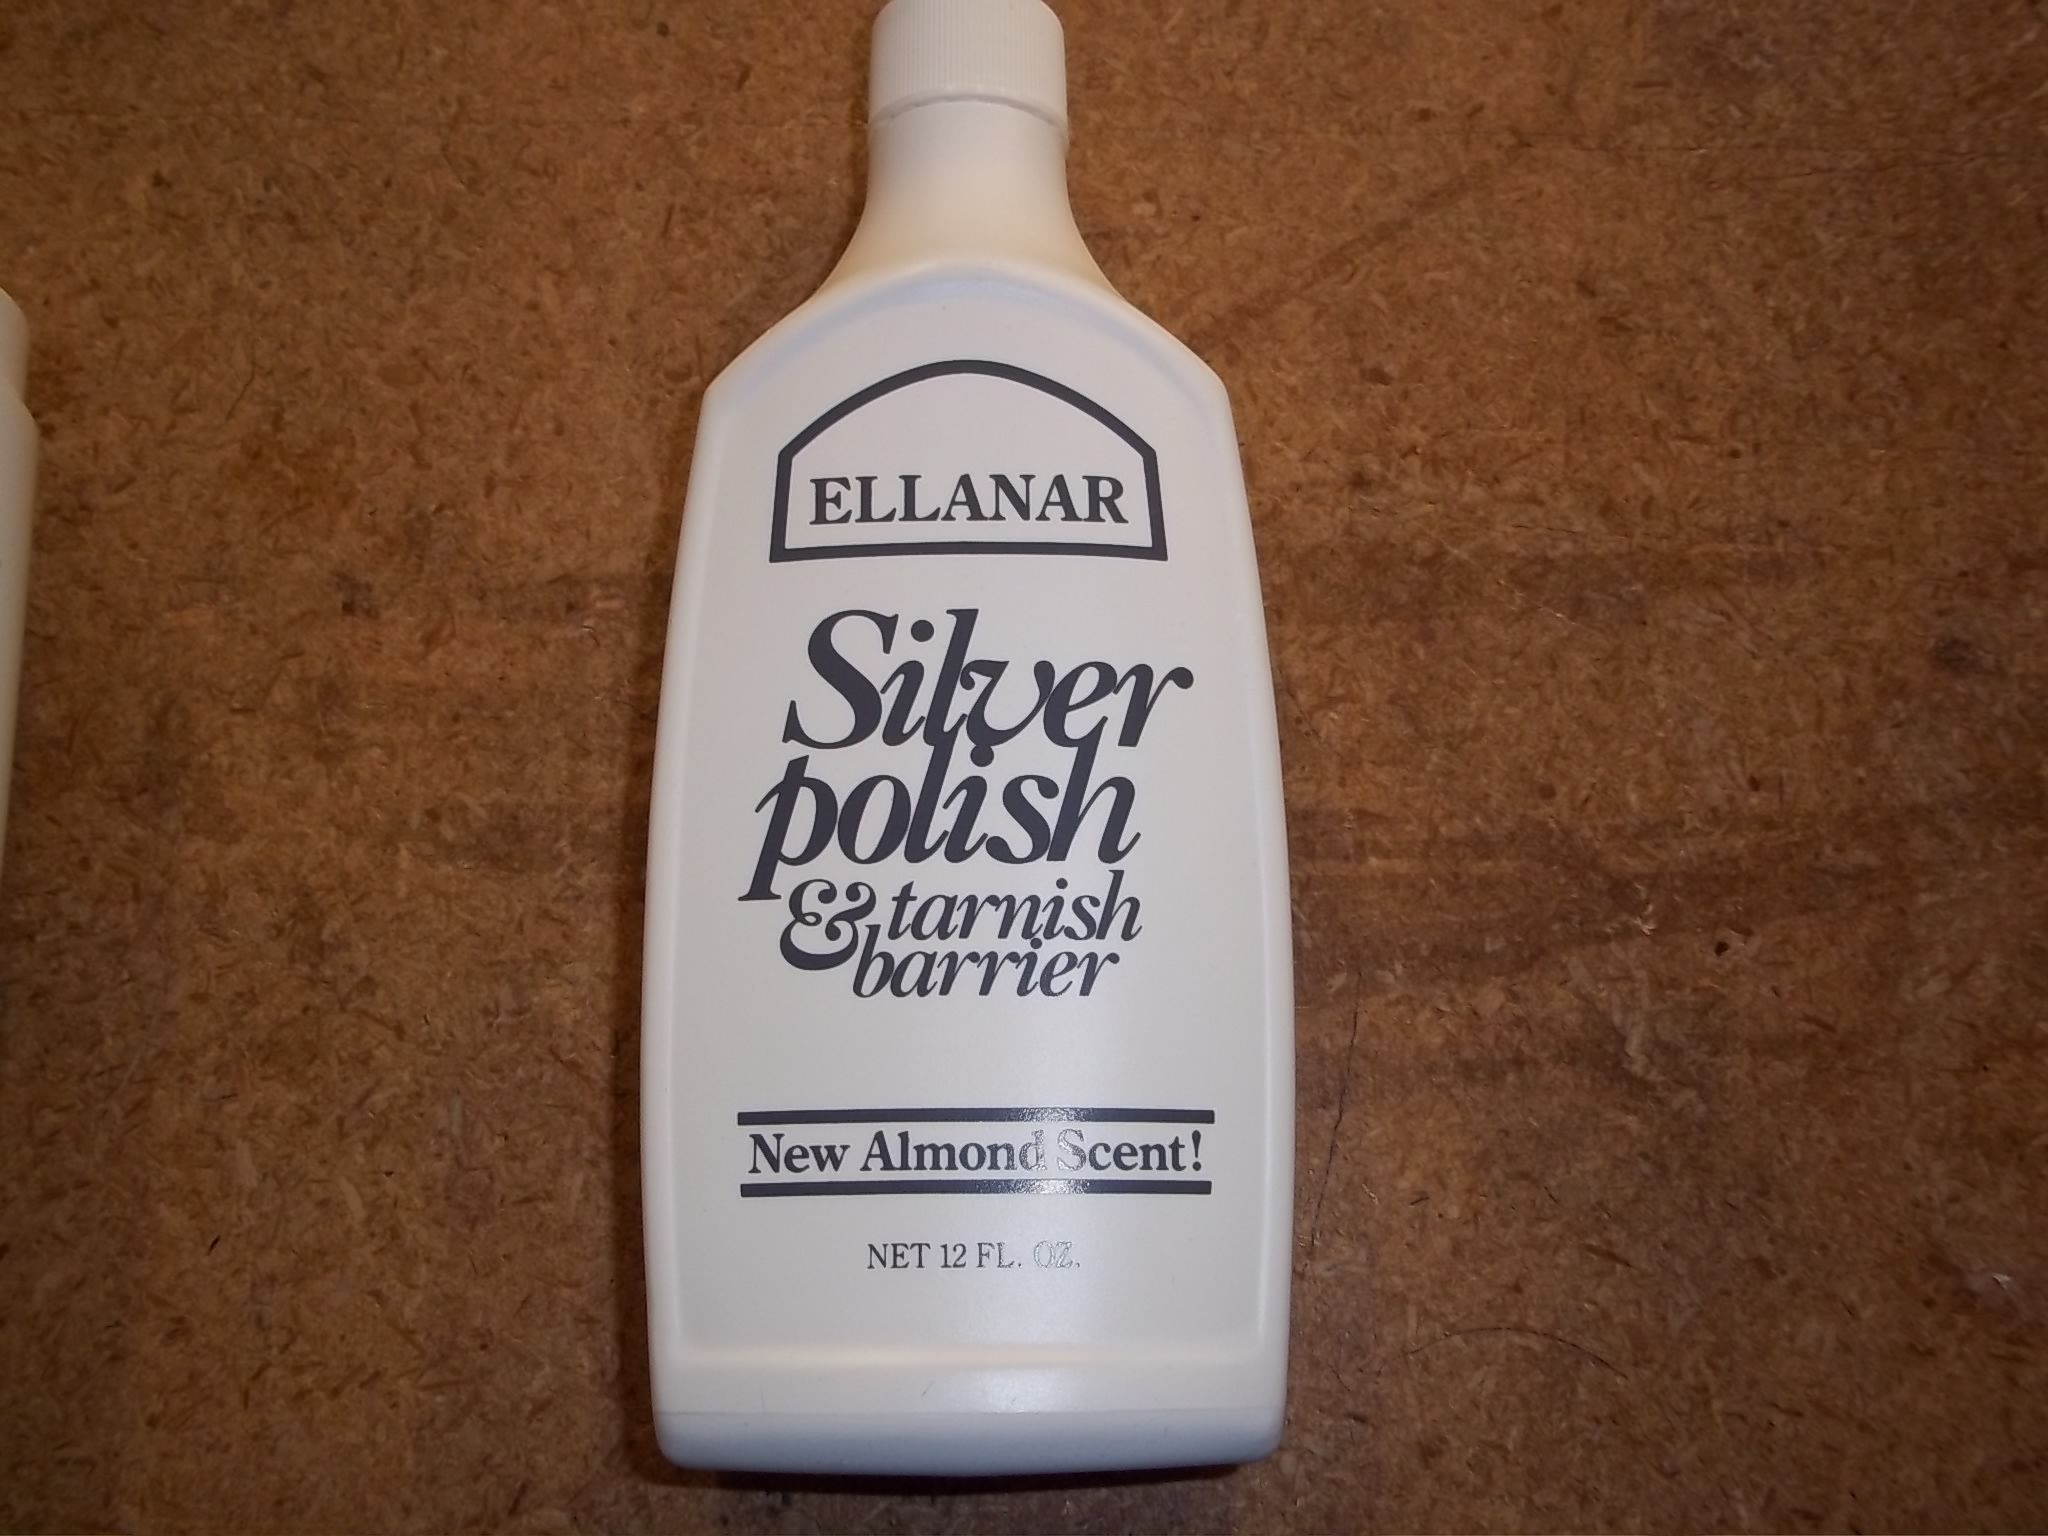 CL177/12 Ellanar Silver Polish  & Tarnish Barrier from L&R  12 fl oz. Bottles- case of 12